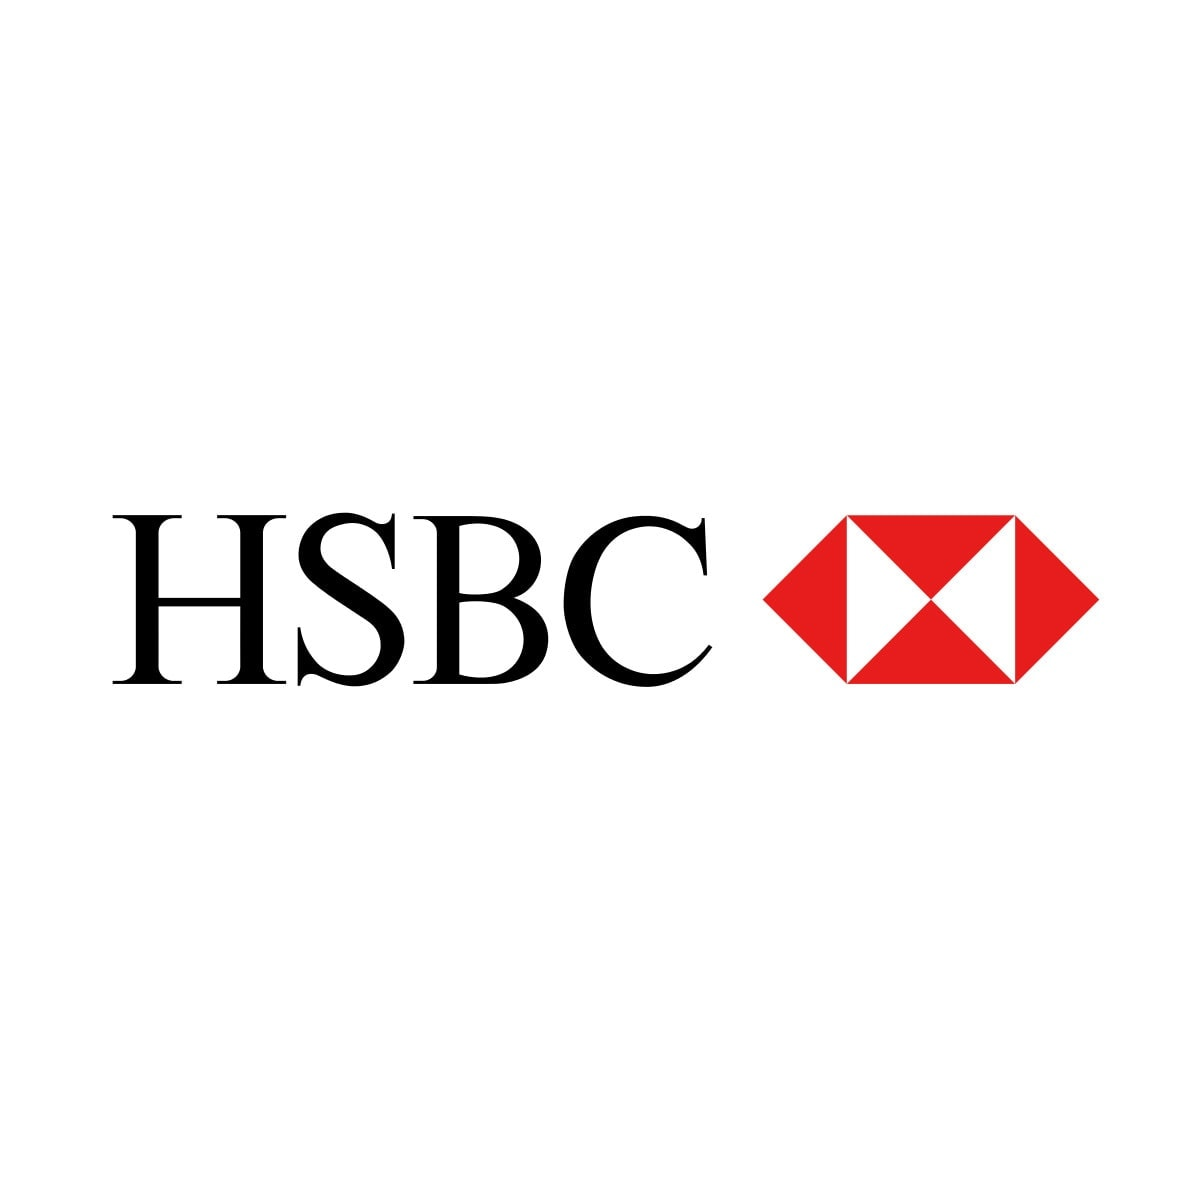 Marketing mix of HSBC